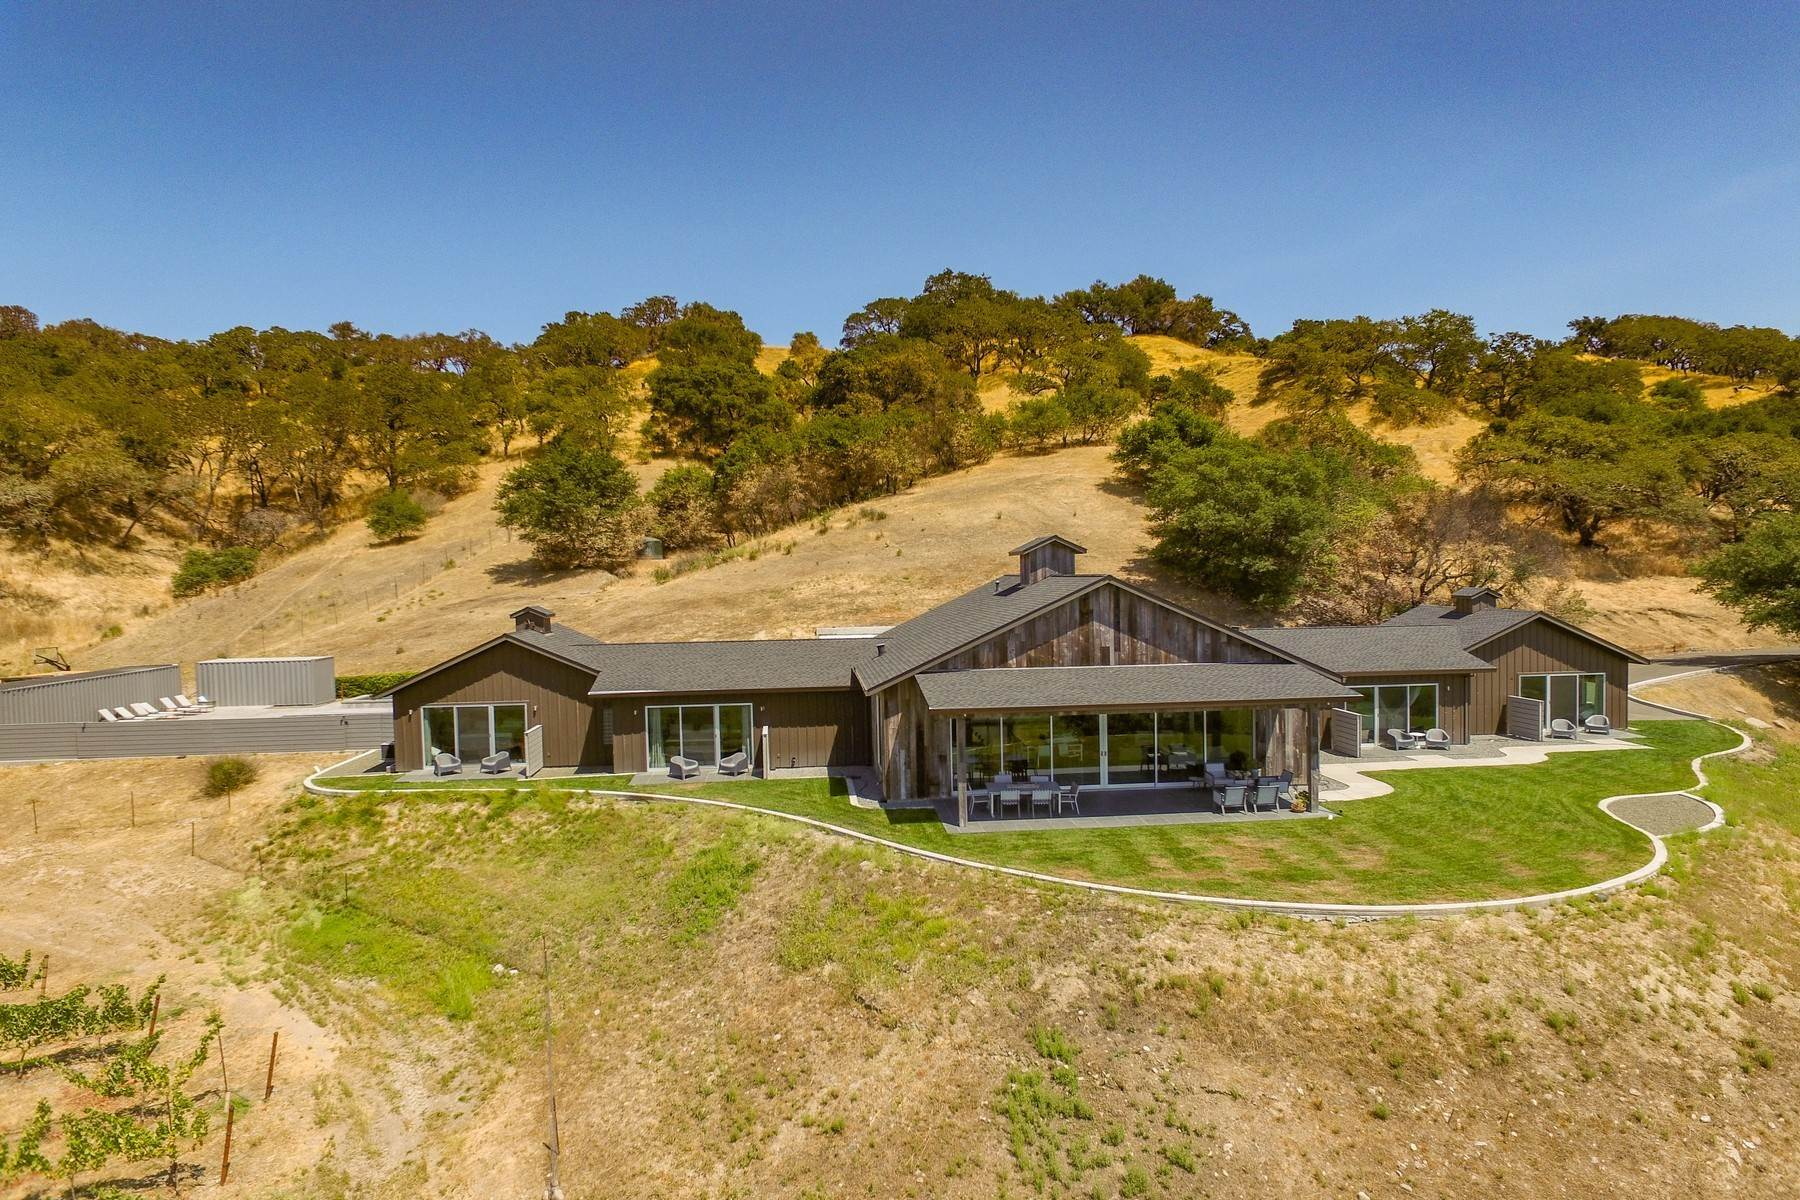 Vineyard Real Estate 용 매매 에 The Sonoma Ranch 6606 Faught Road Santa Rosa, 캘리포니아 95403 미국